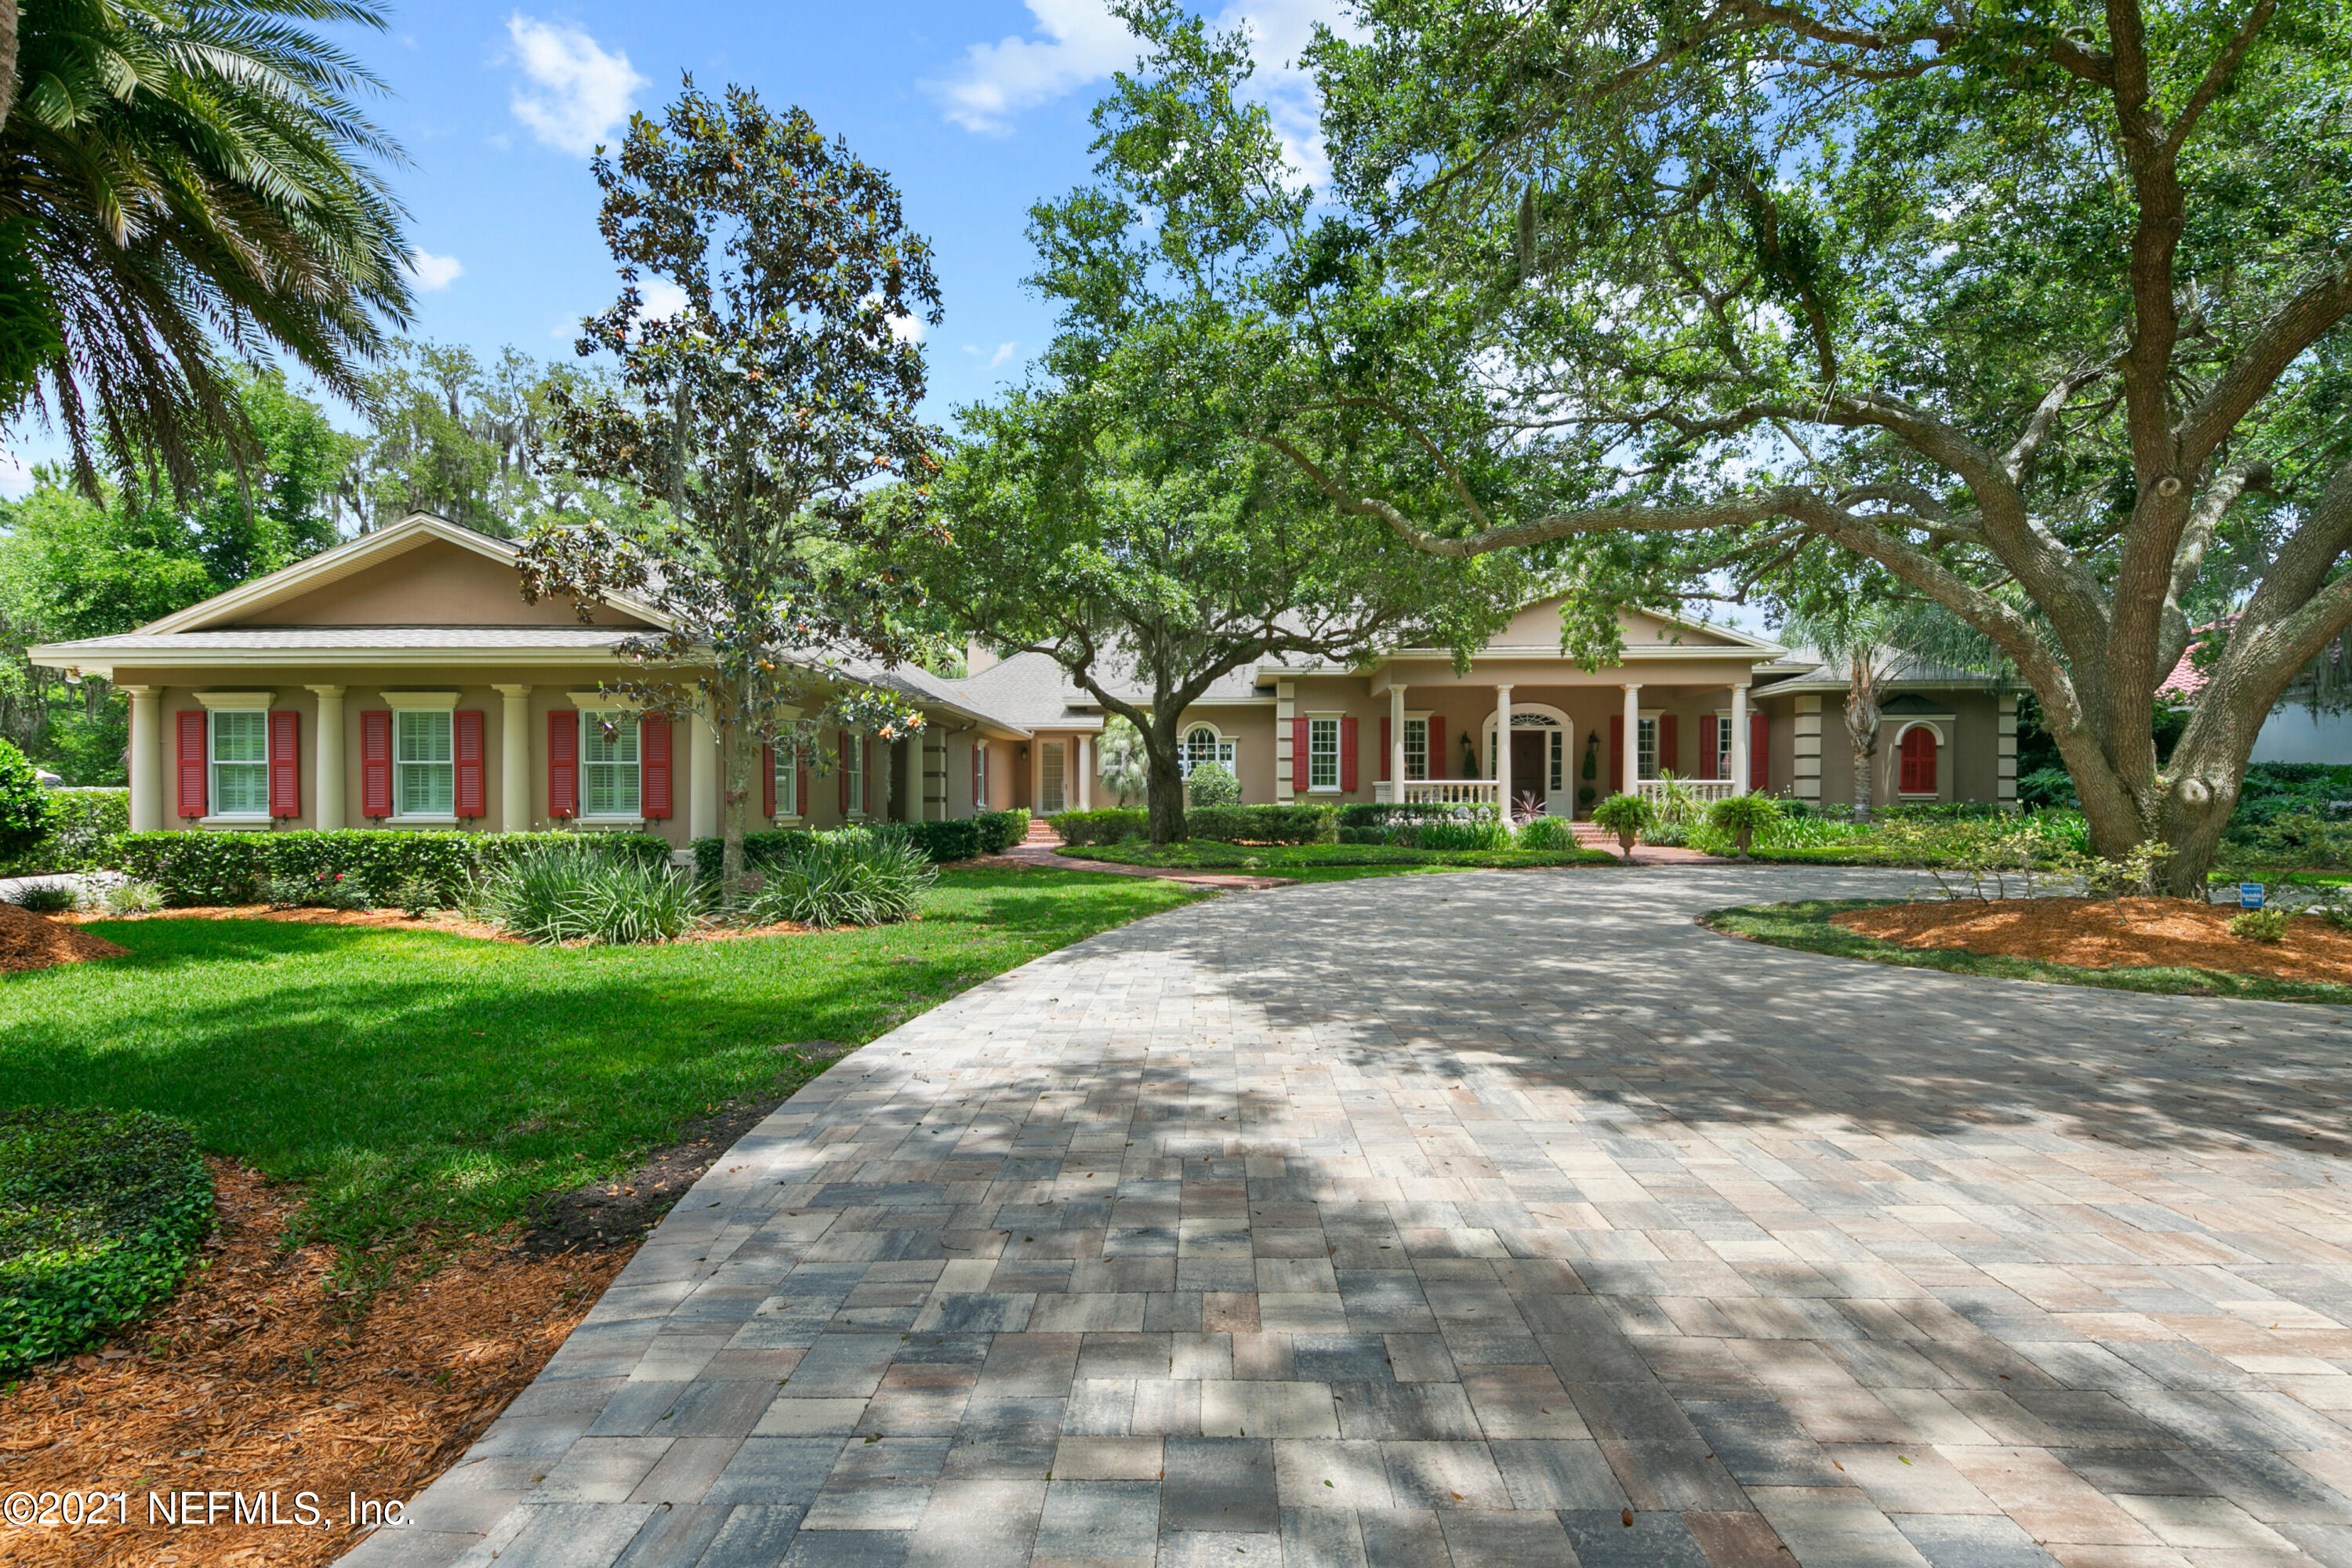 Welcome to Queens Harbour! The ultimate in Florida living. Boating, Golfing, Swimming and Tennis. There is no  place like it. Your future home is a Custom Built Low Country  Estate. Originally designed and built as the Developers personal home. Situated on 1.2 acres waterfront. He hand picked the finest lot, covered with  mature Oaks that offer shade to compliment the cool breeze of the water. 5 Car Garage, New Wolf  appliances, Granite counters. Paver drive, custom mill work, custom Bar, Large gathering room, 2 living rooms. This home is an entertainers dream.  Recently added an extraordinary  owners bath and custom closet  in which  no detail was overlooked. Heated floors, electronic revolving  shoe rack. There are too many custom features to list. Every bedroom enjoys an on-suite bath